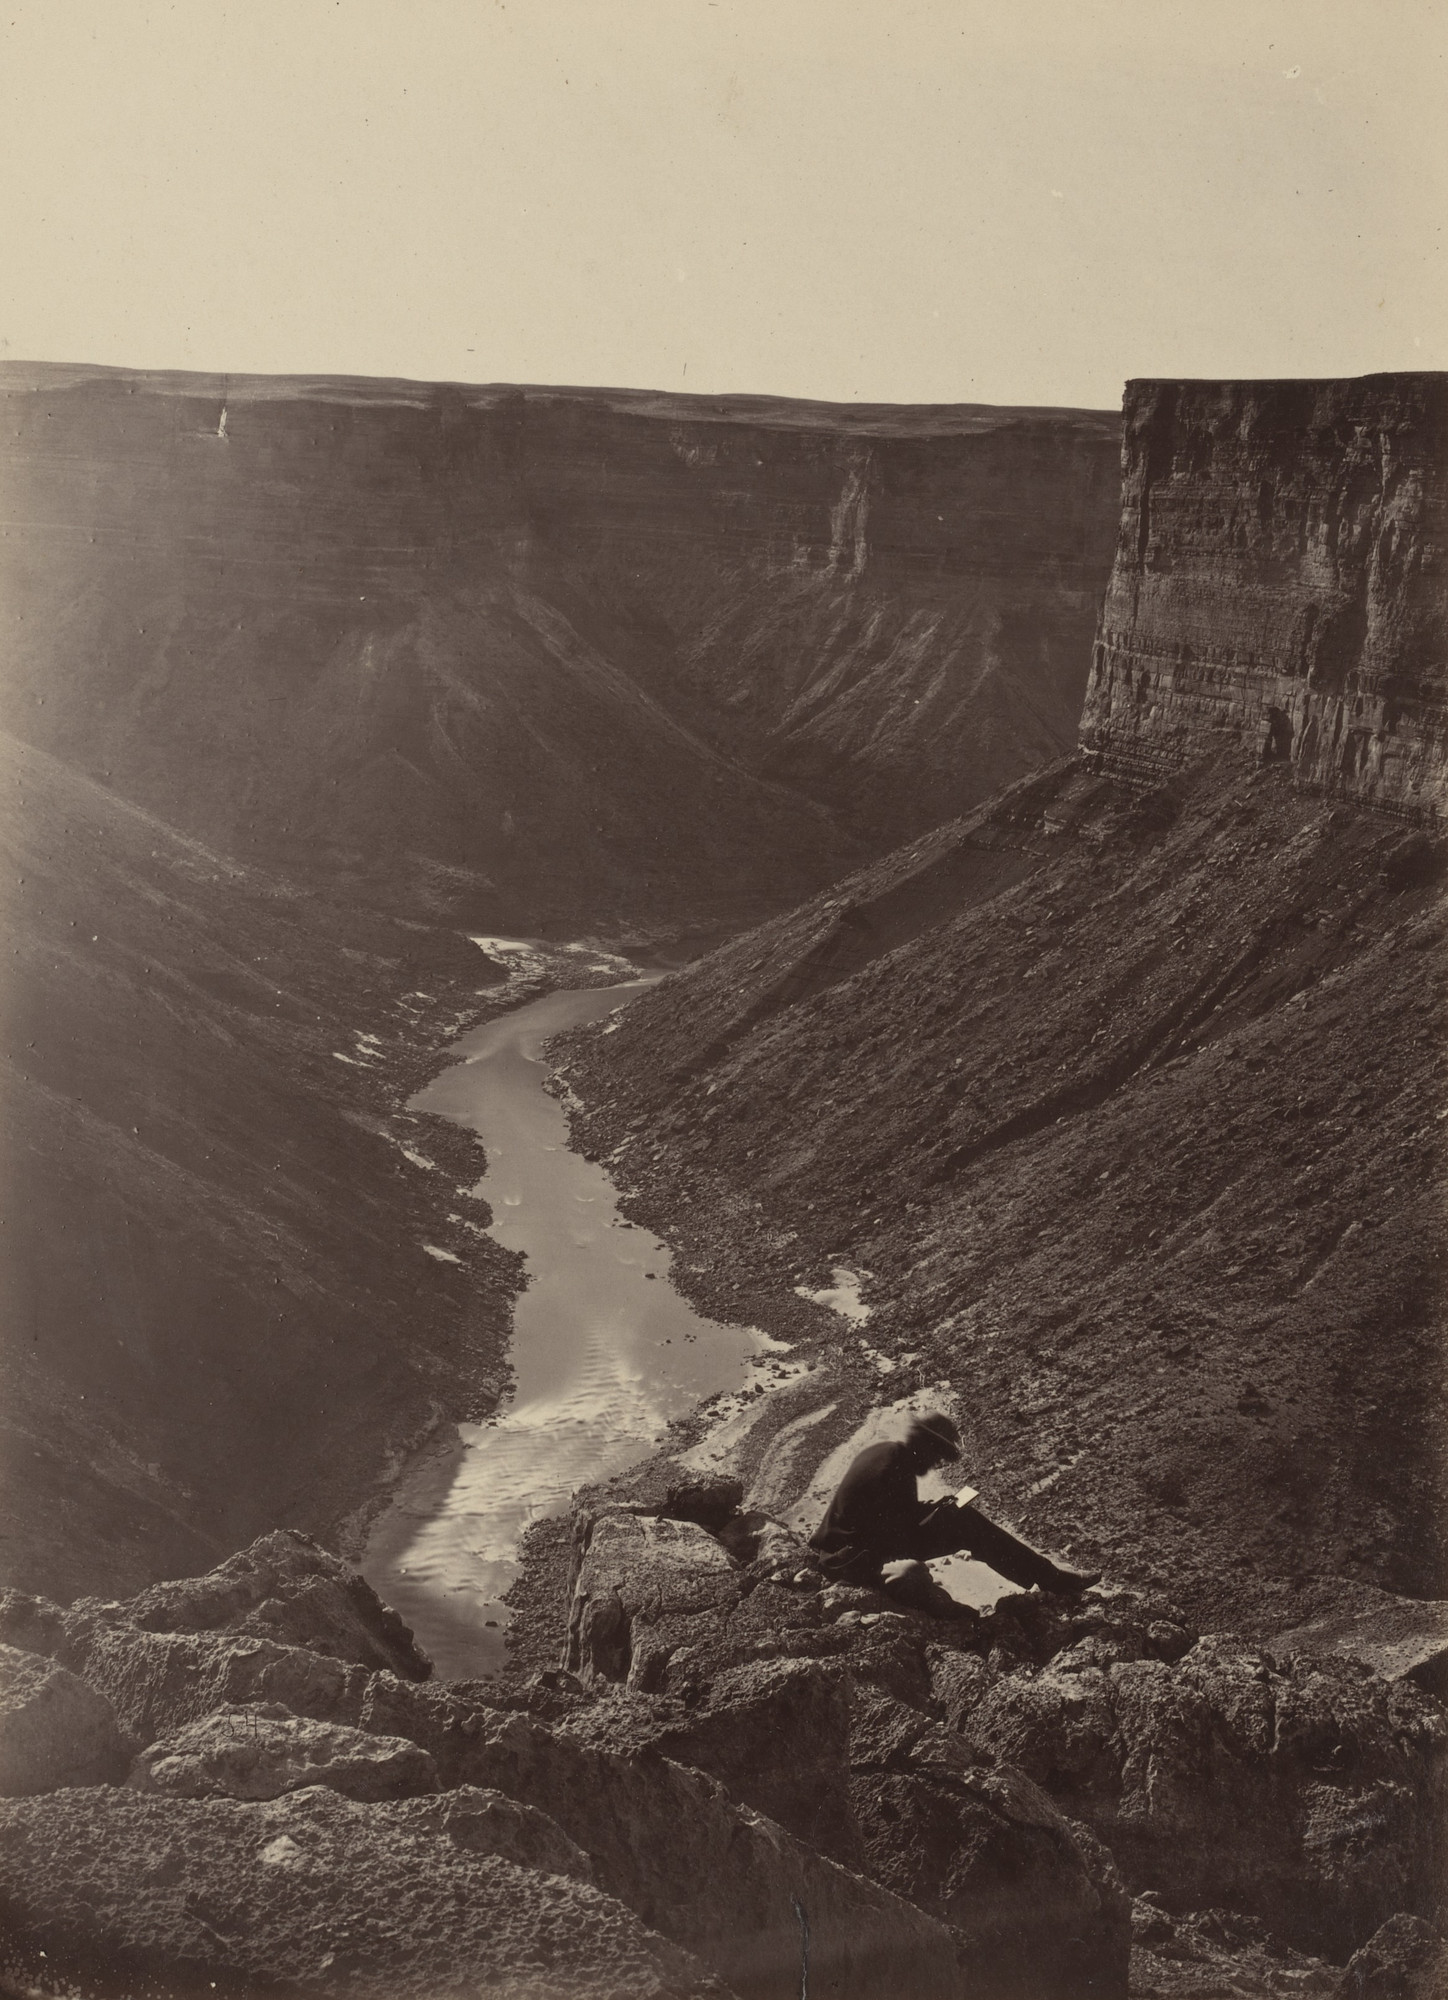 William H. Bell, Timothy O'Sullivan. Grand Canyon of the Colorado River, Mouth of Kanab Wash, Looking West. Seasons of 1871, 1872 and 1873